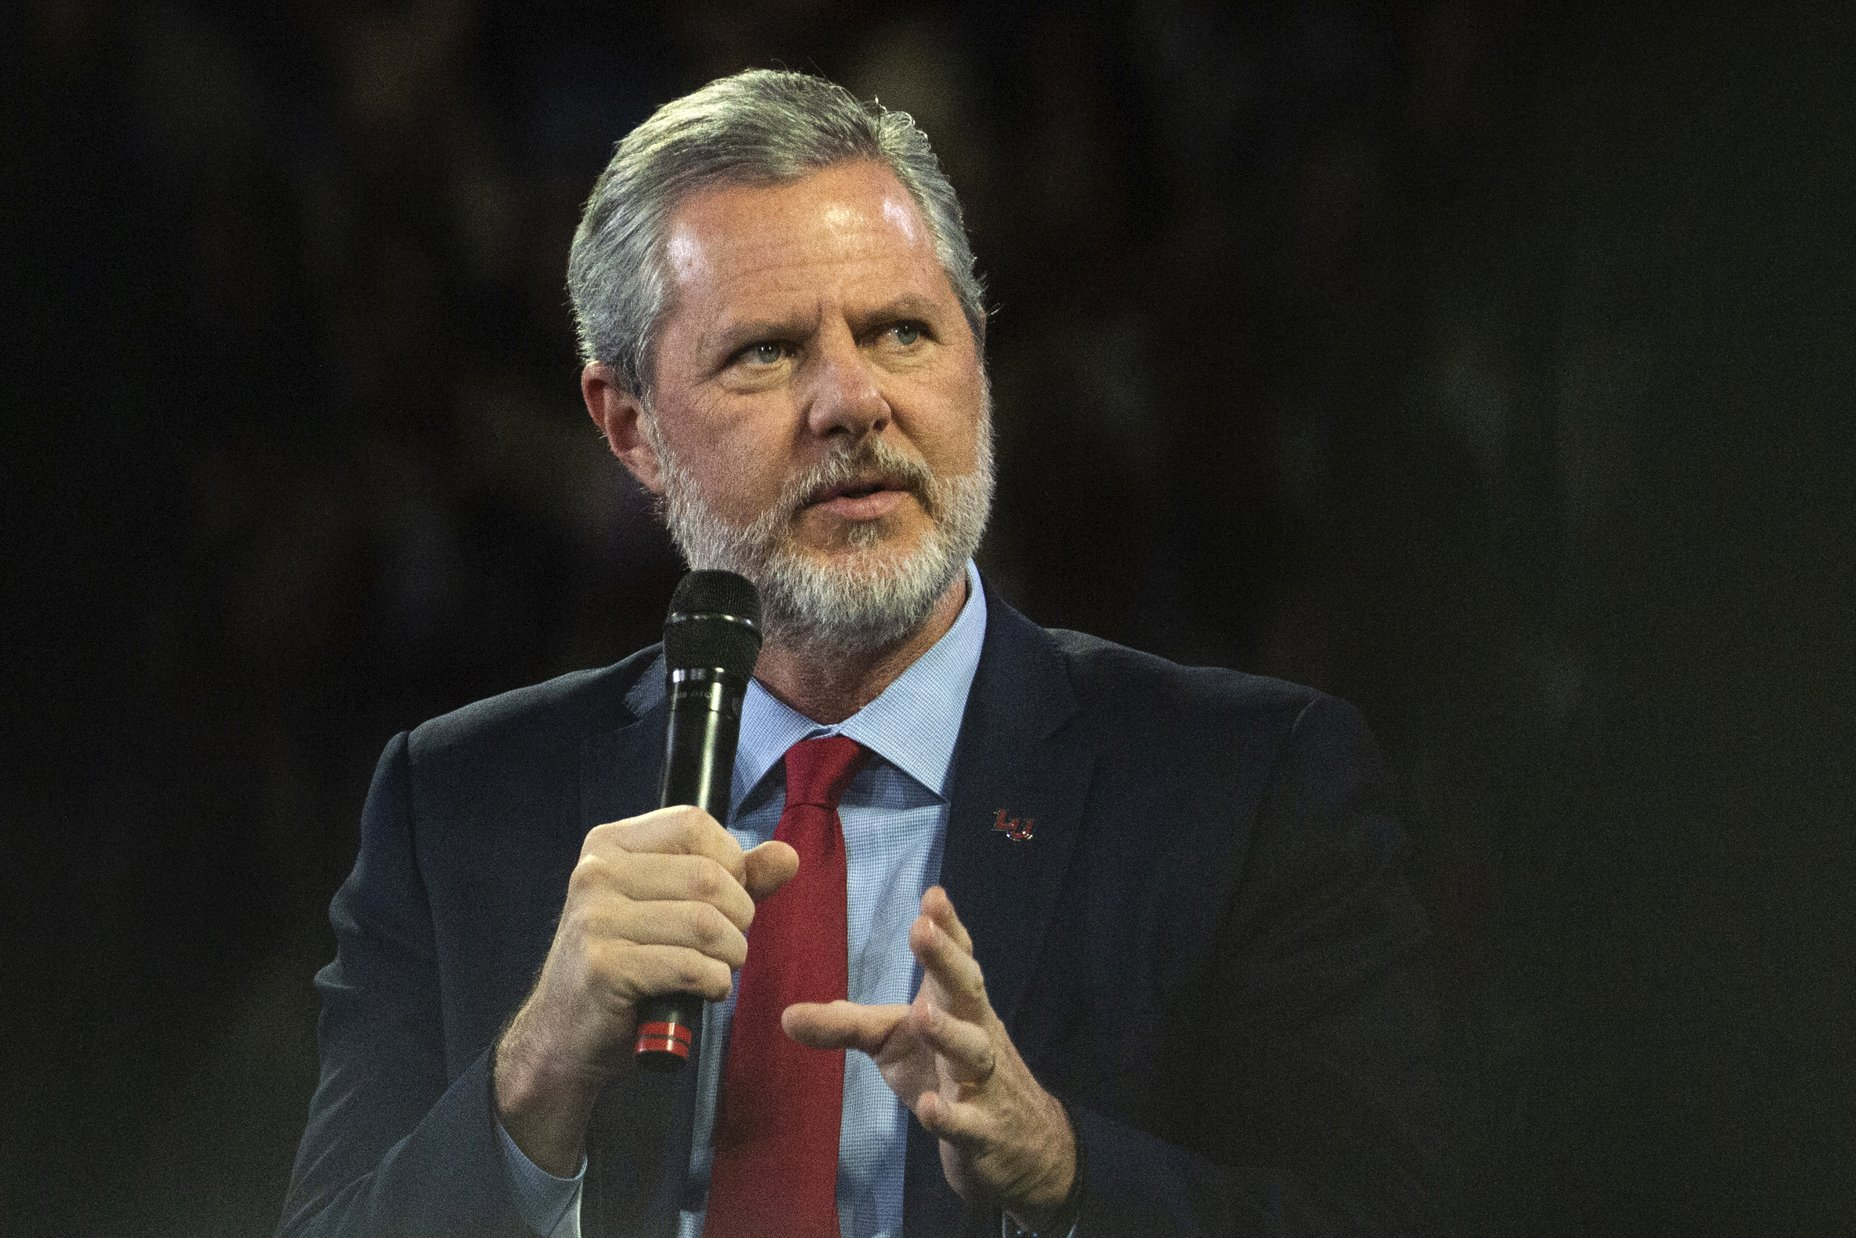 Liberty sues Jerry Falwell Jr.  and claims millions in damages